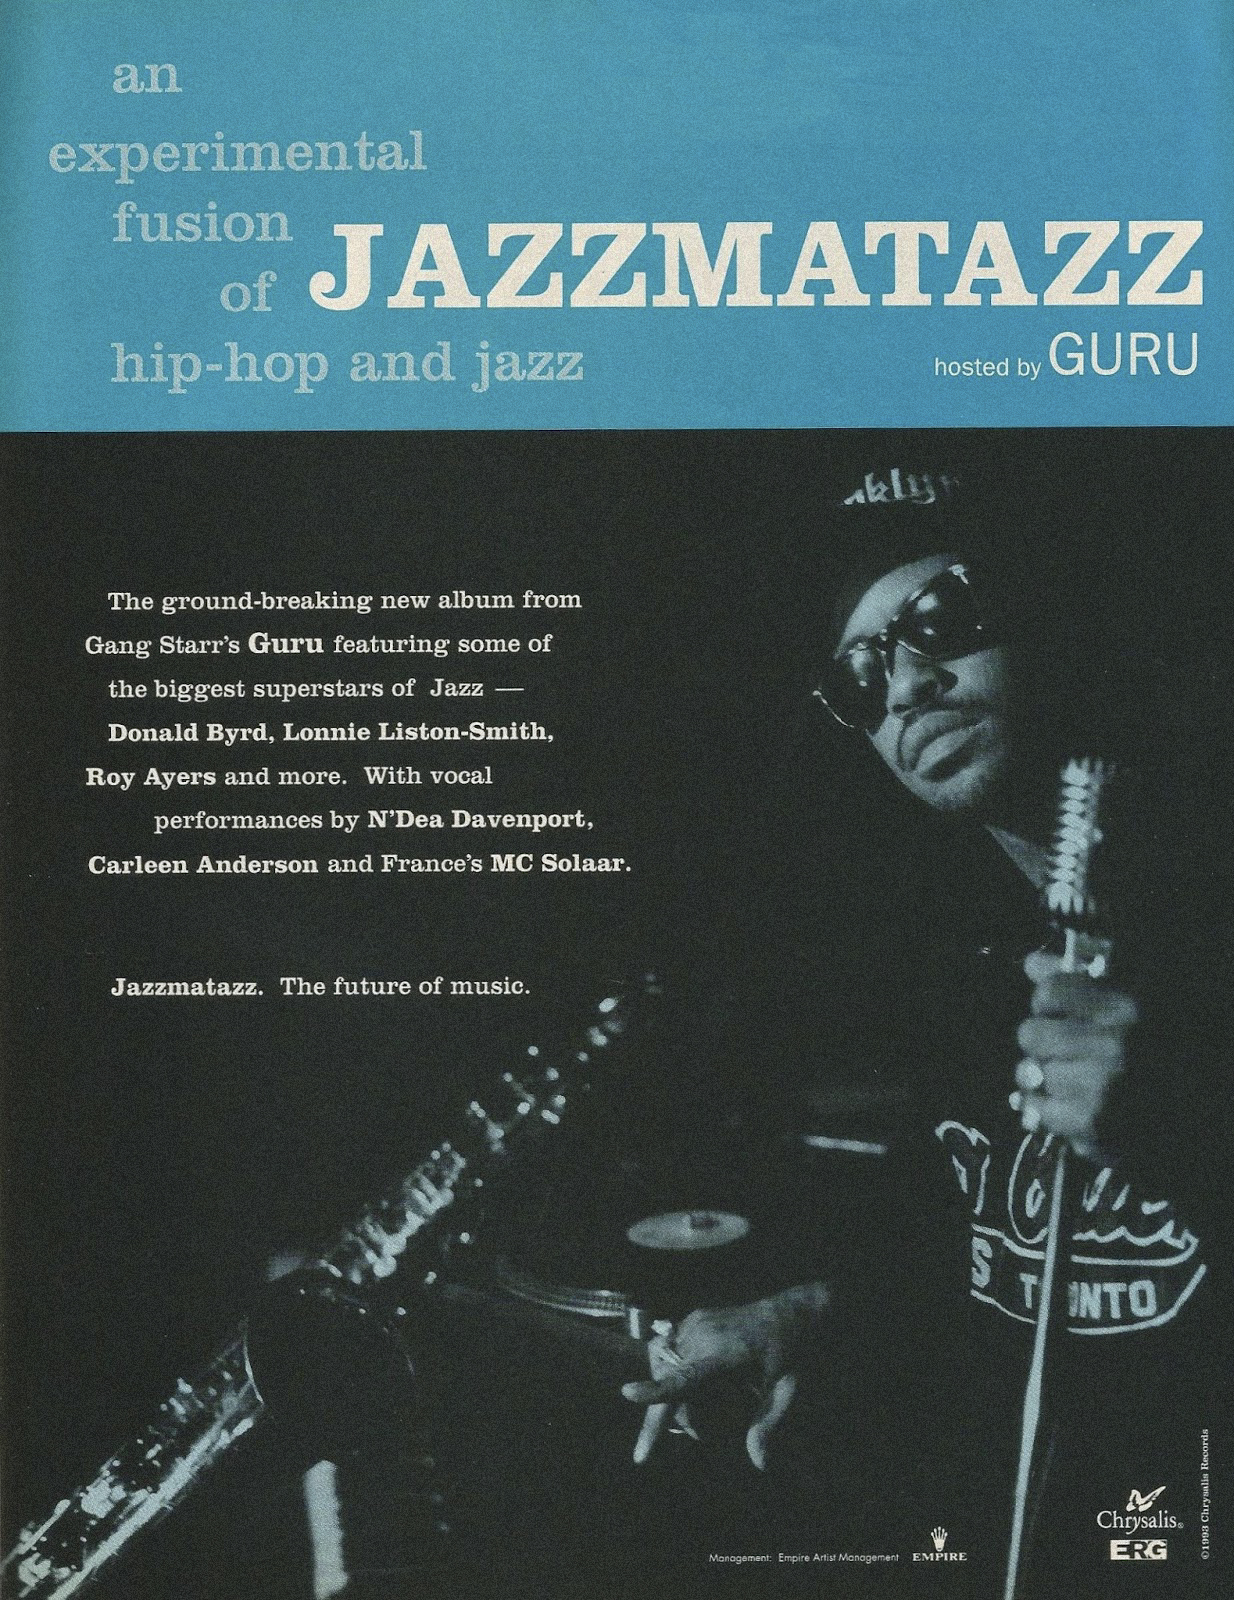 Guru Jazzmatazz Volume 1 Advertisement May 18, 1993